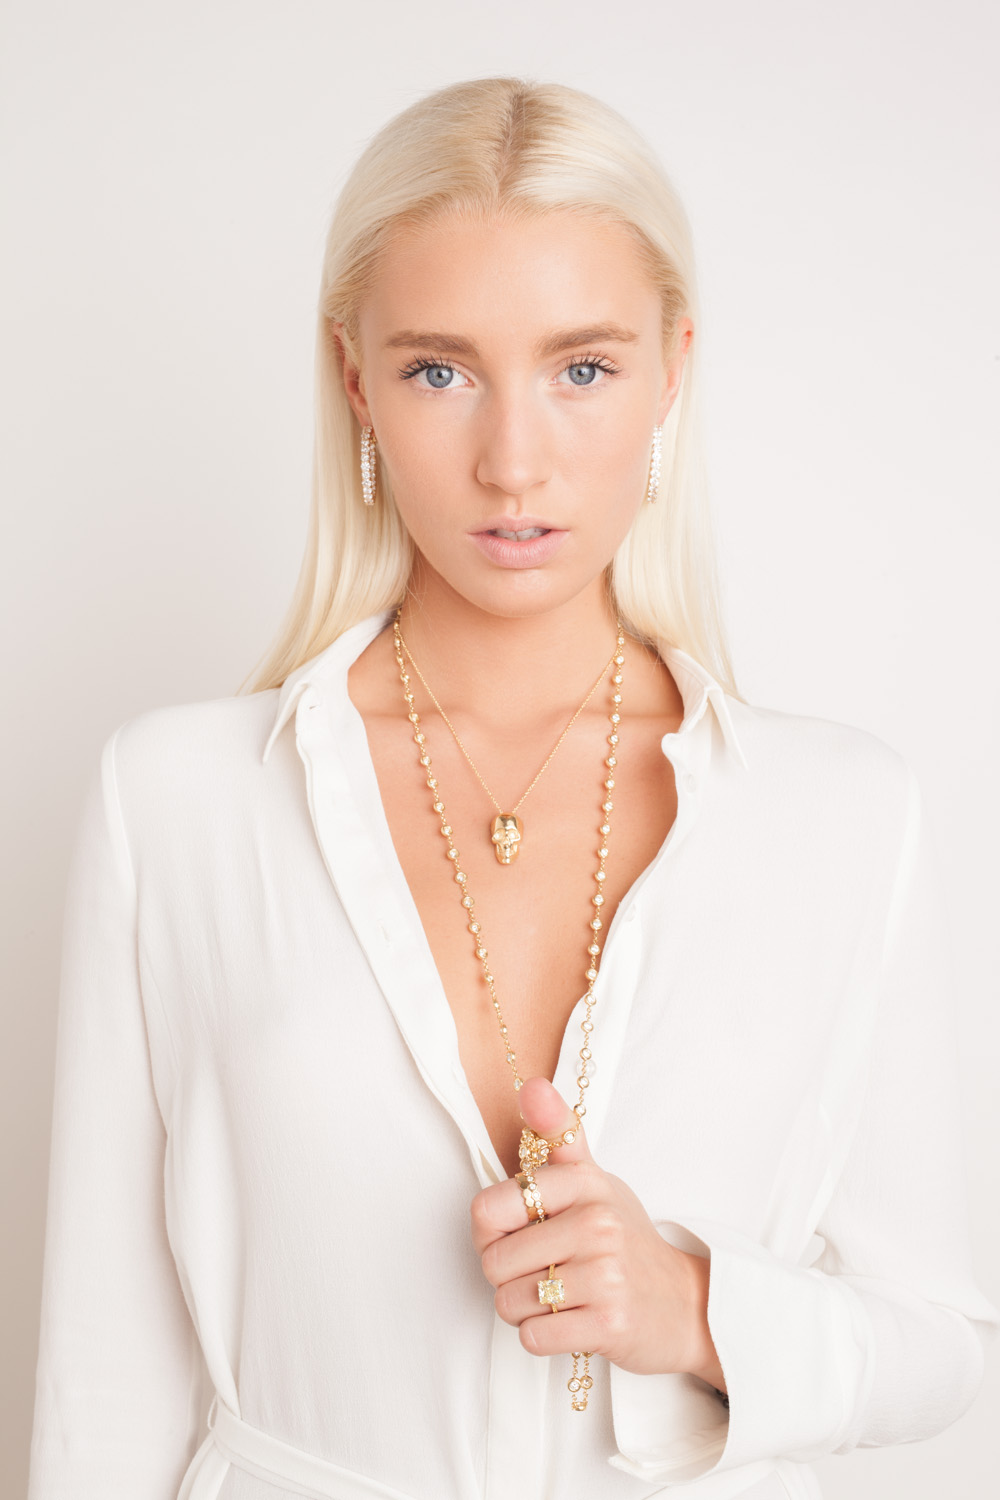 Studio fashion photography NYC jewelry lookbook photographer New York beauty shoot blonde model skull necklace Space 4 Shoots